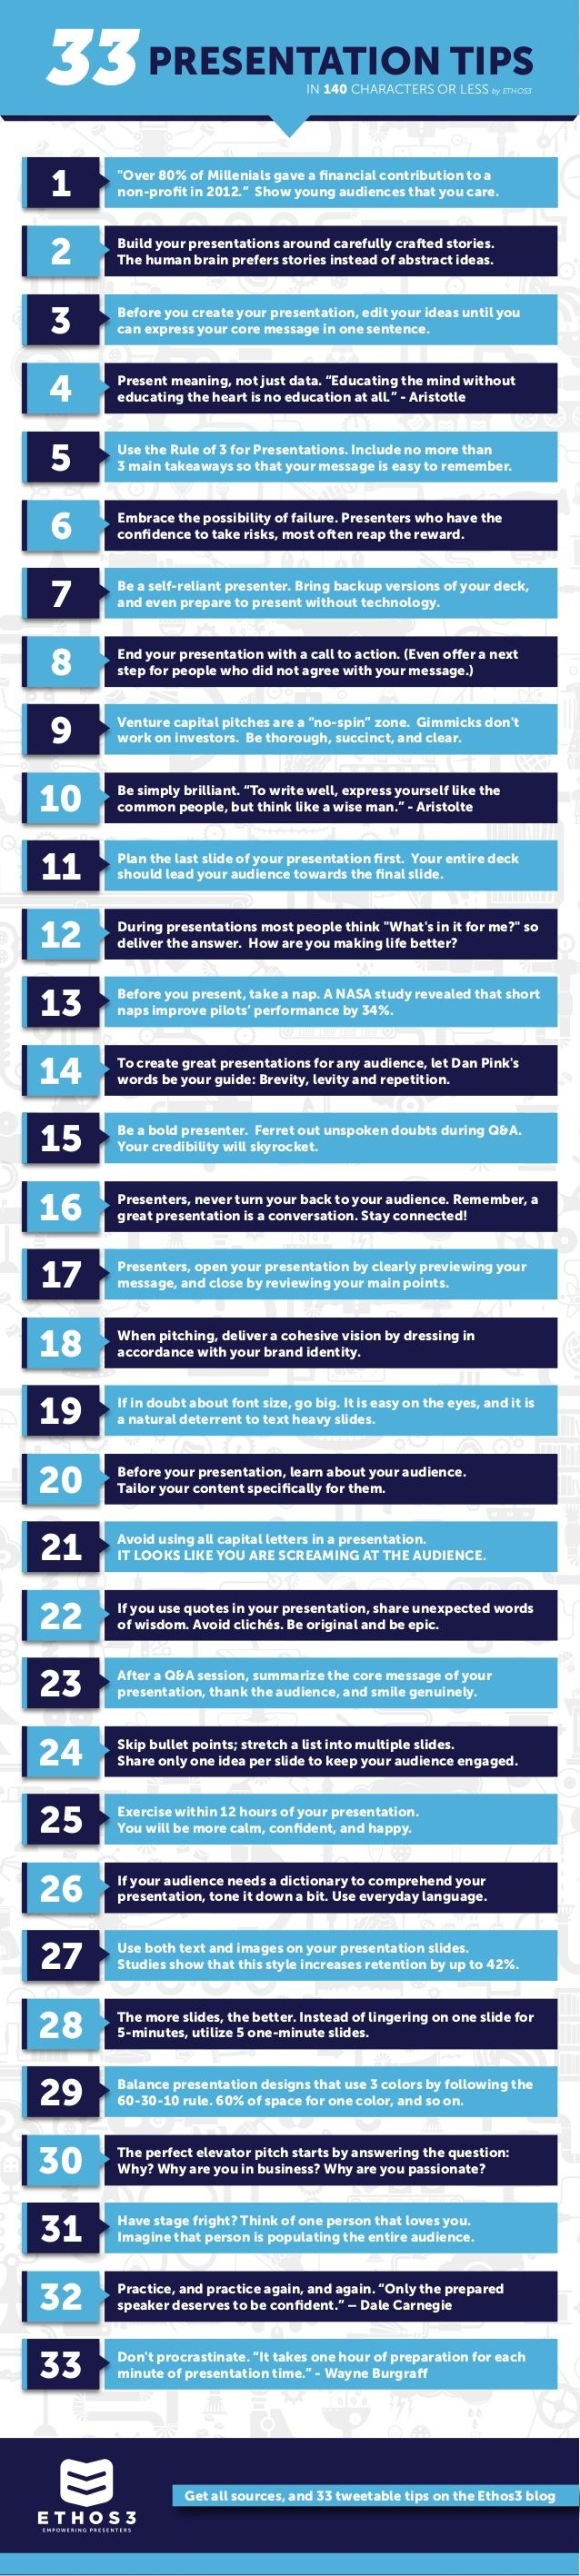 33 Presentation Tips in 140 characters or less